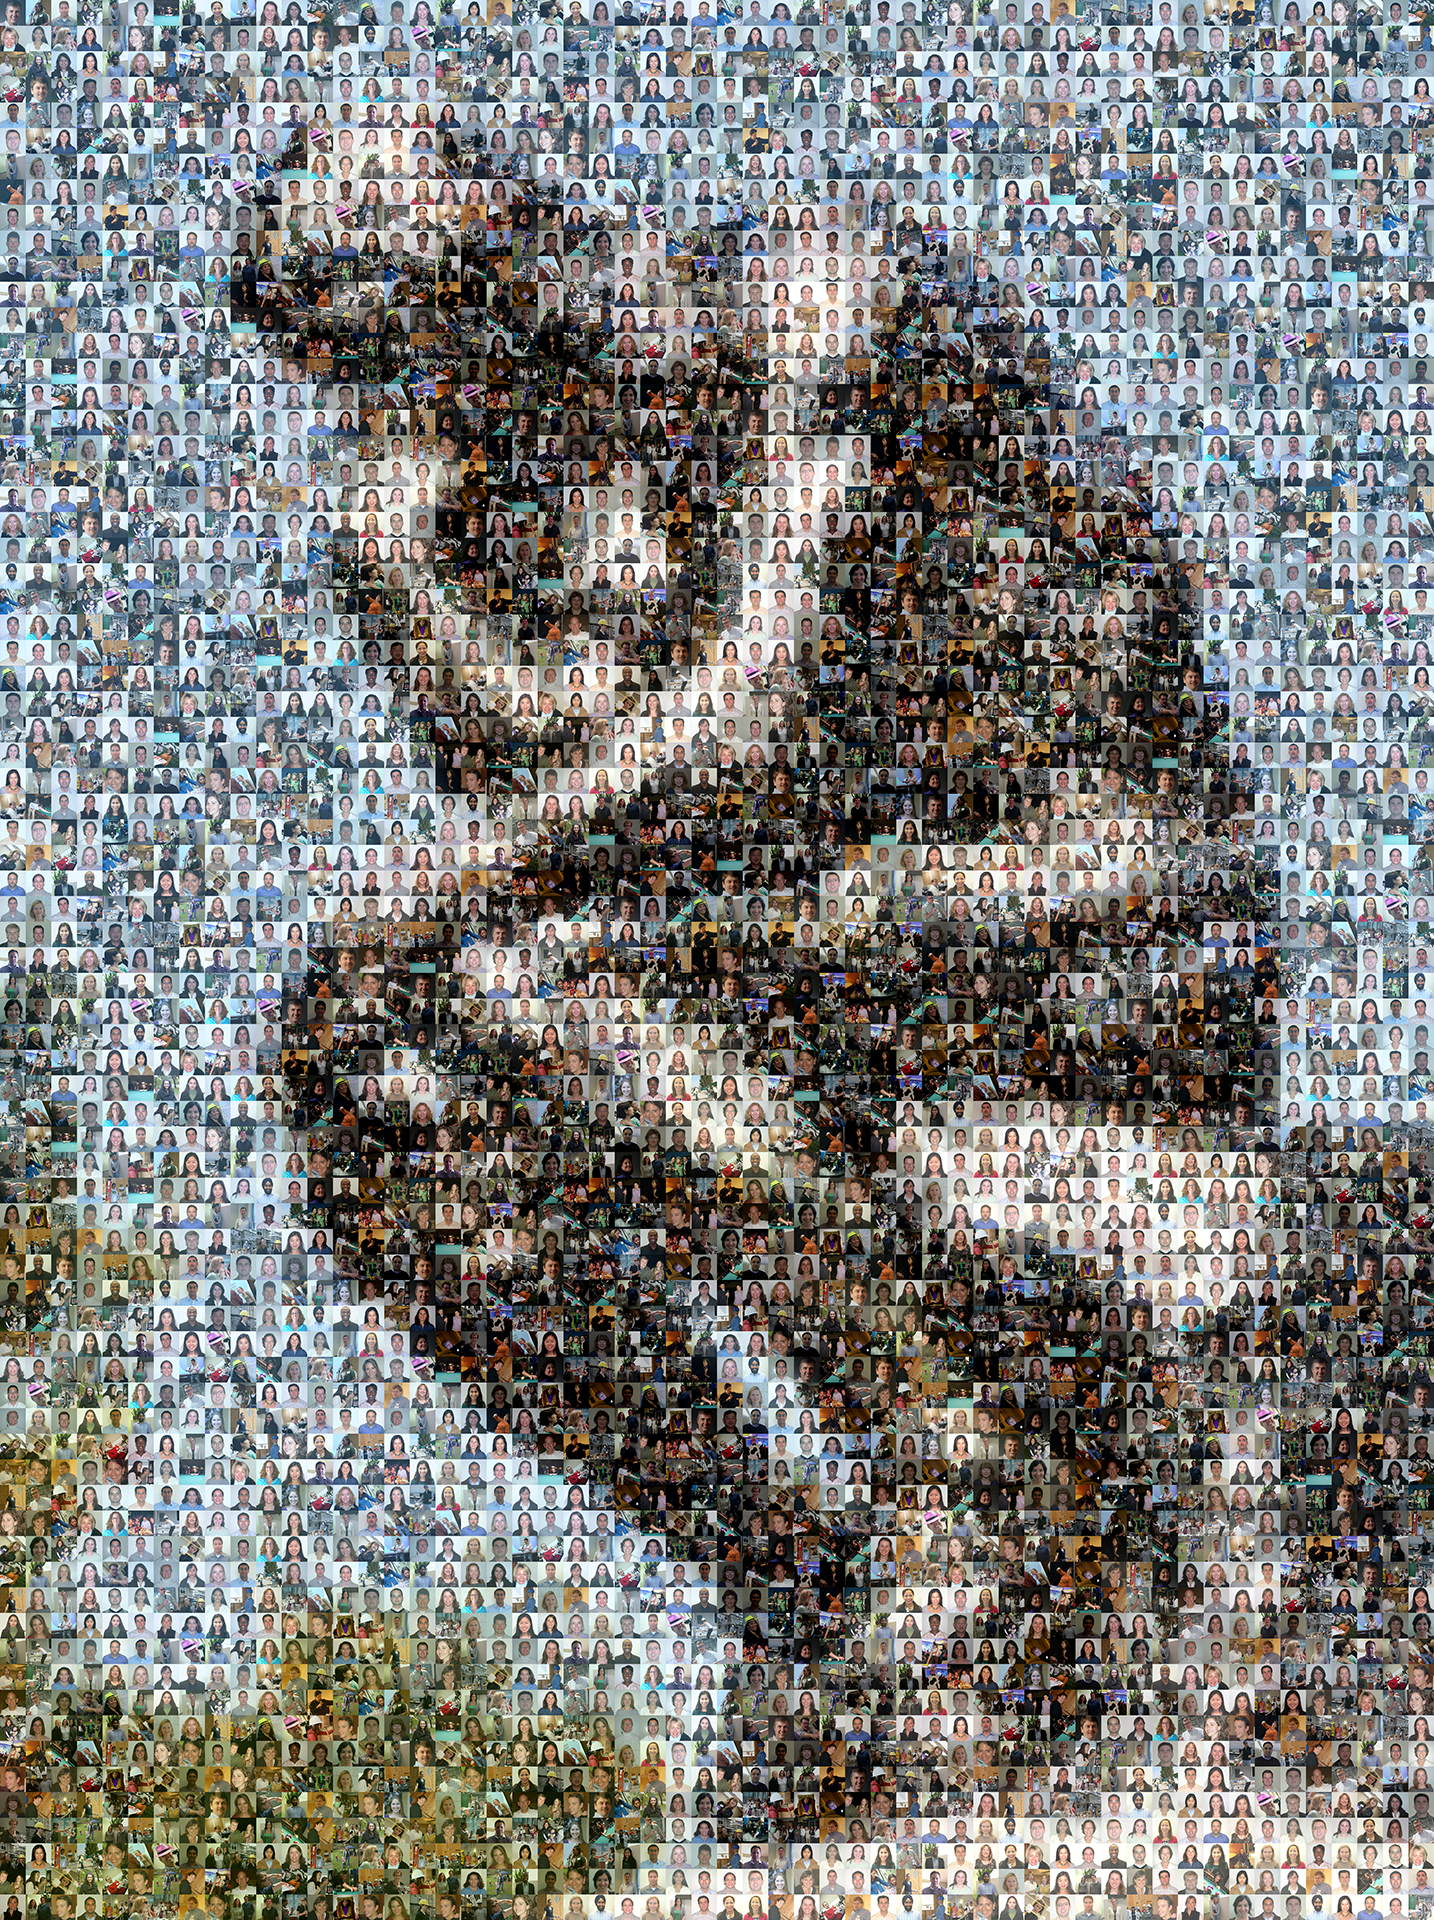 photo mosaic created using 145 employee photos